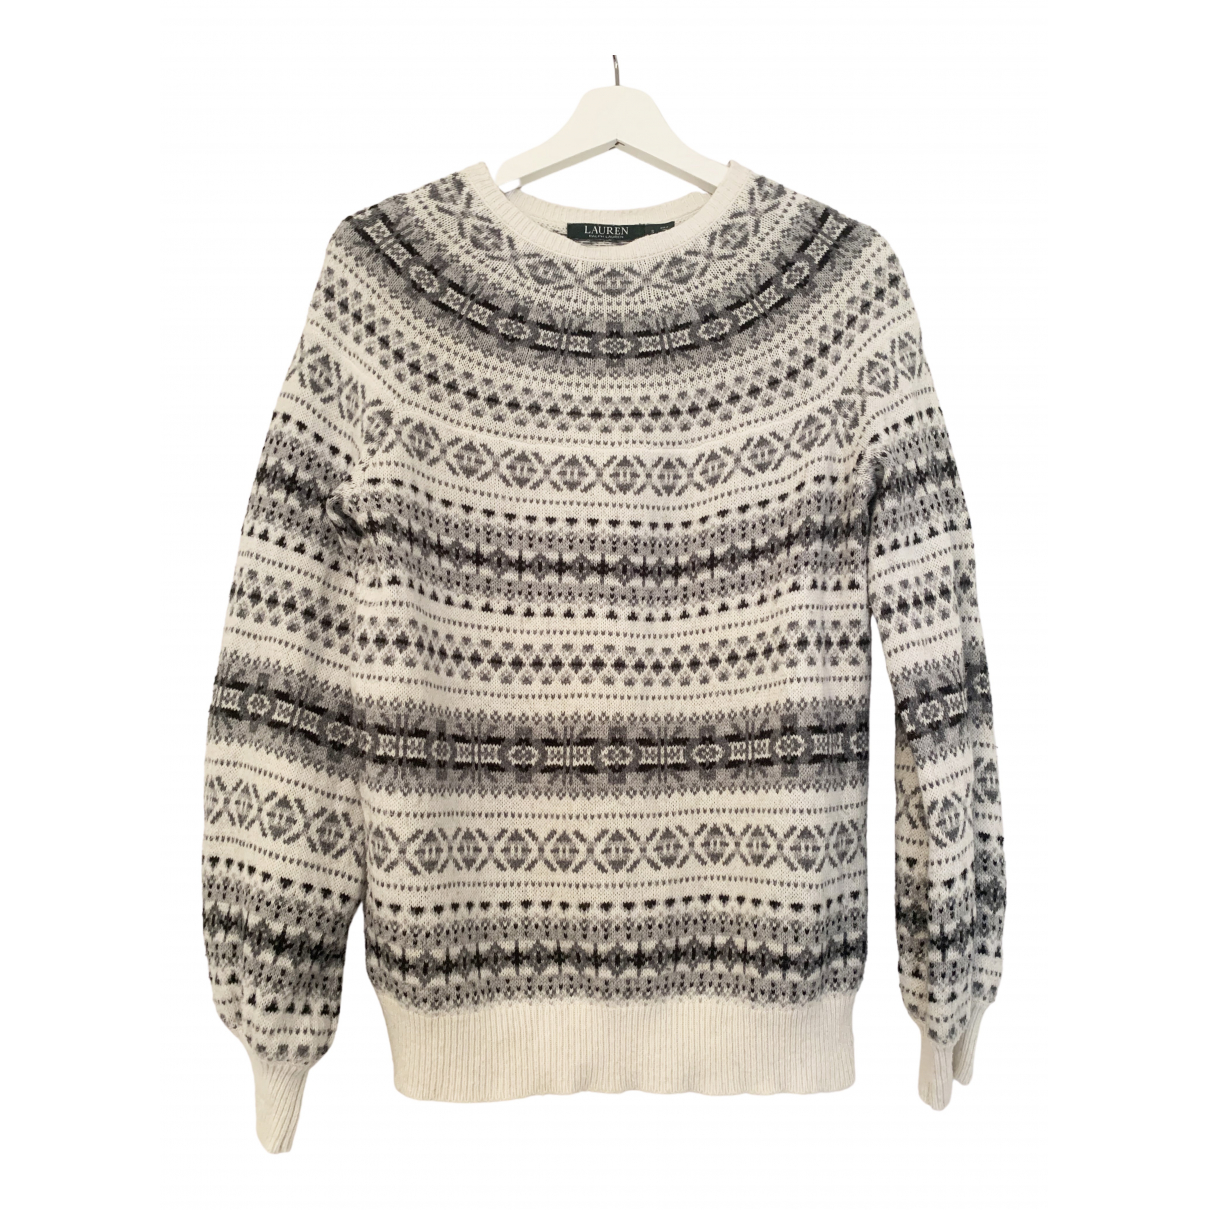 Lauren Ralph Lauren N Multicolour Wool Knitwear for Women S International